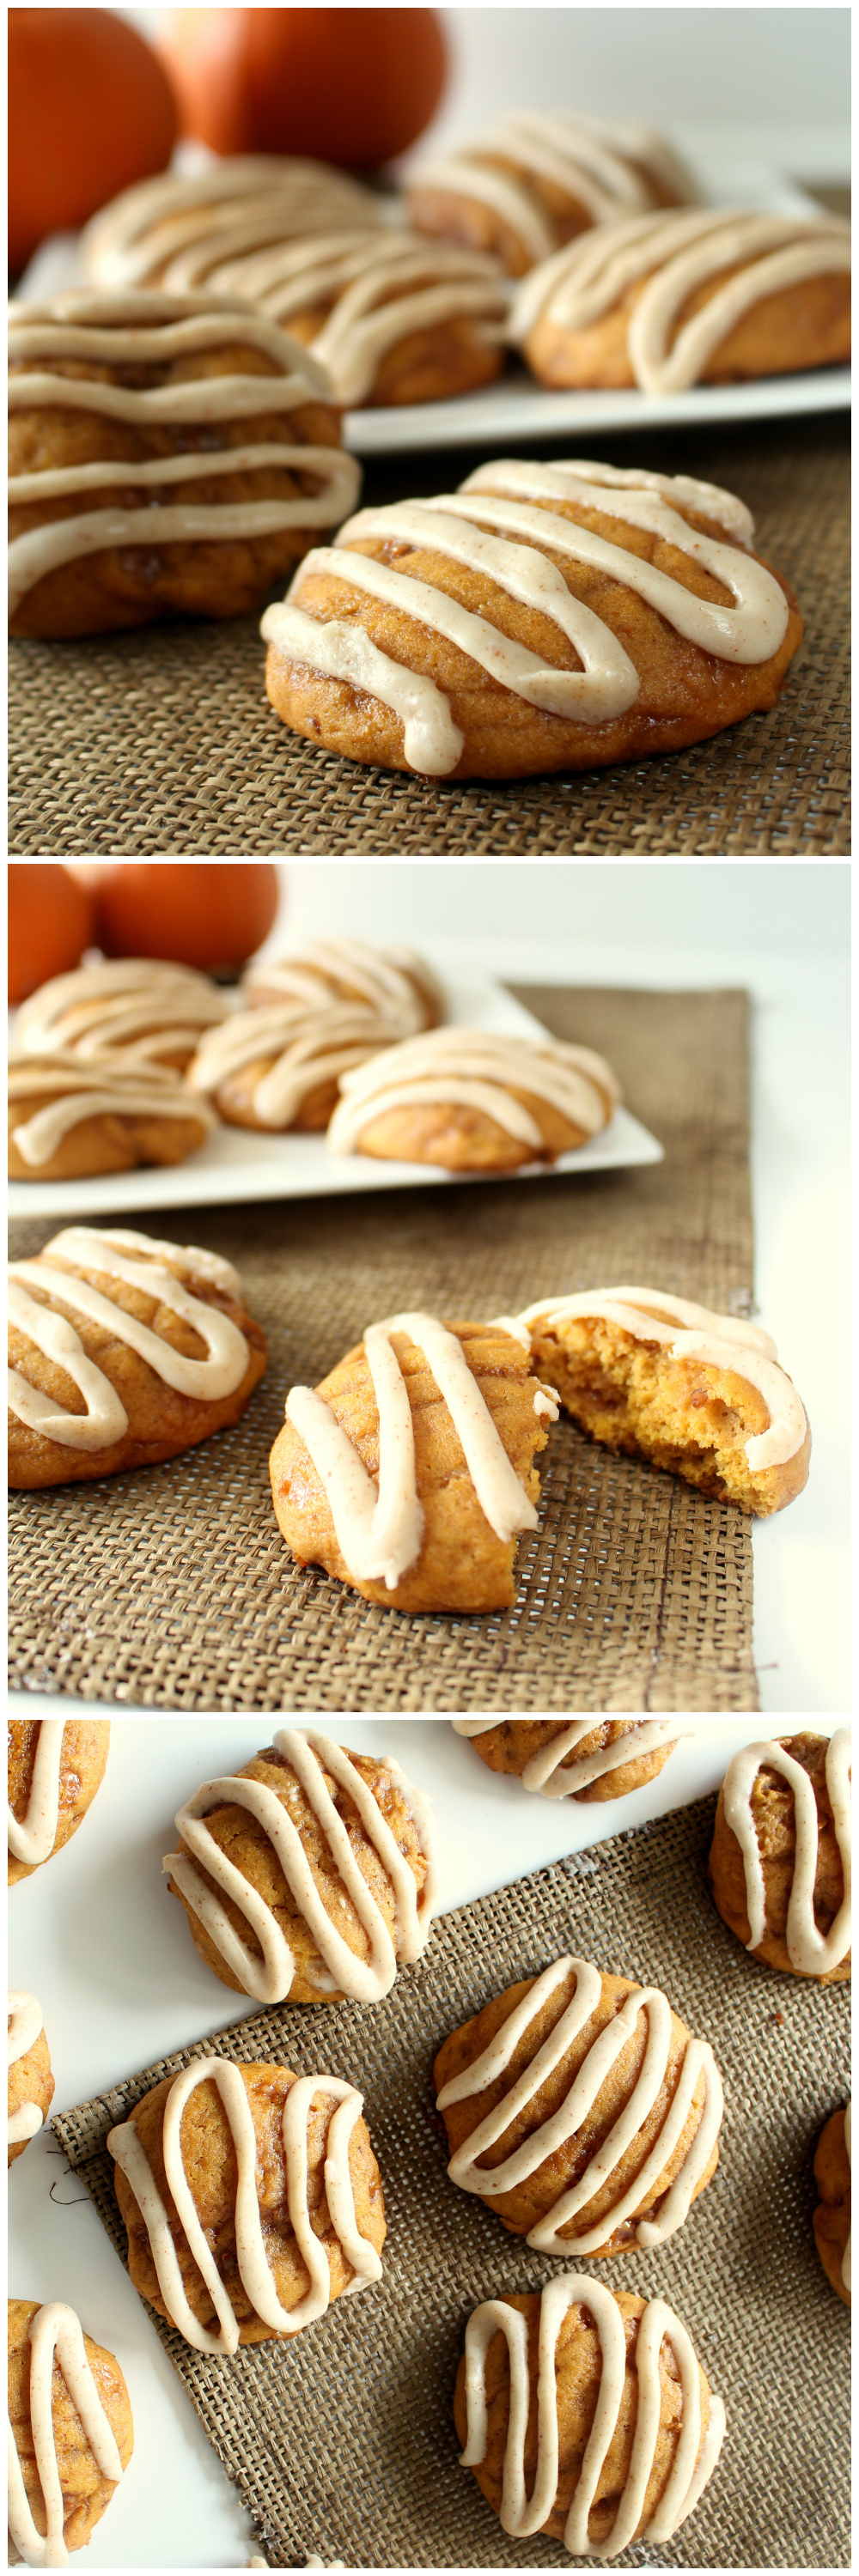 Pumpkin Toffee Cookies with Browned Butter Glaze - Chocolate with ...